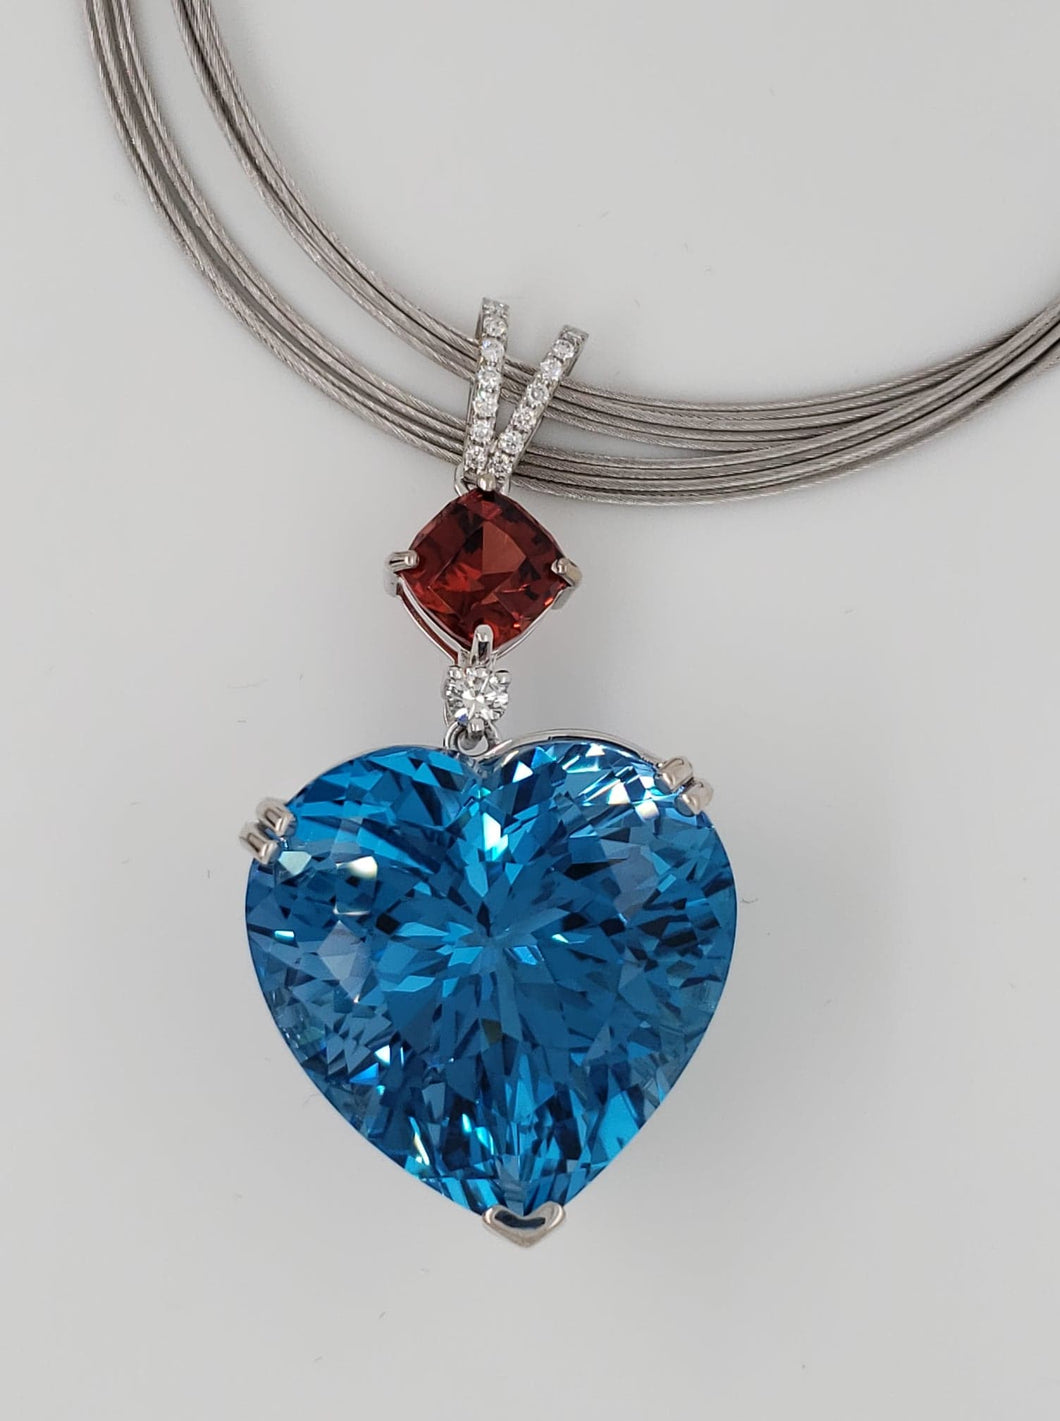 80ct London Blue Topaz and 3.5ct Malaya Imperial Garnet and Diamond Pendant